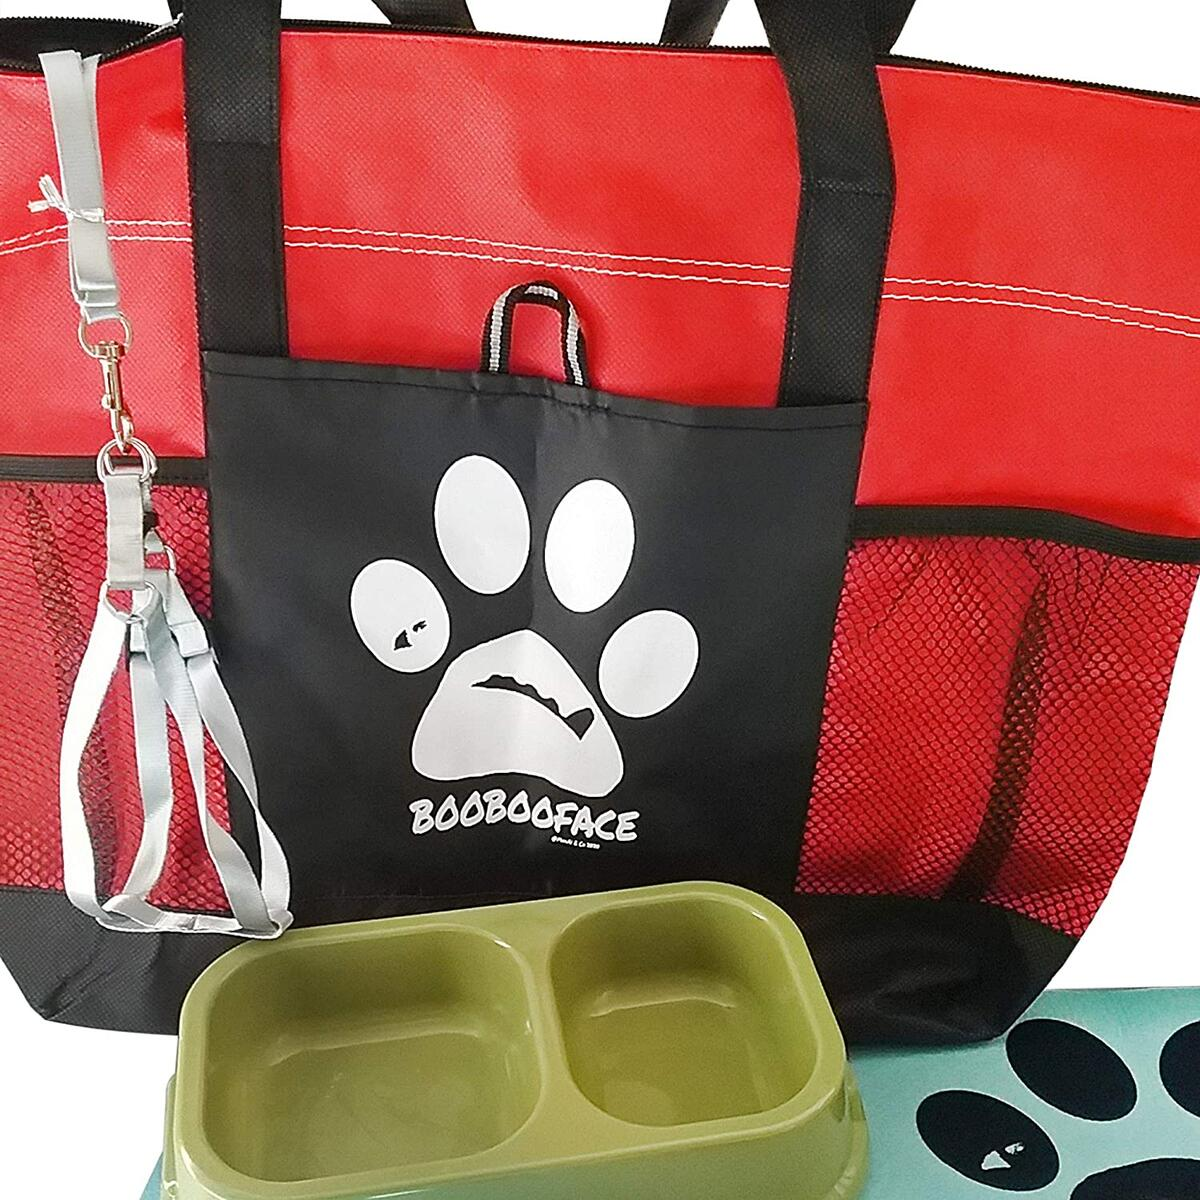 'BooBooFace' Dog Lovers Recommended Starter Bundle for New Puppy Owners Harness Food Mat Carry Bag for Small Dogs